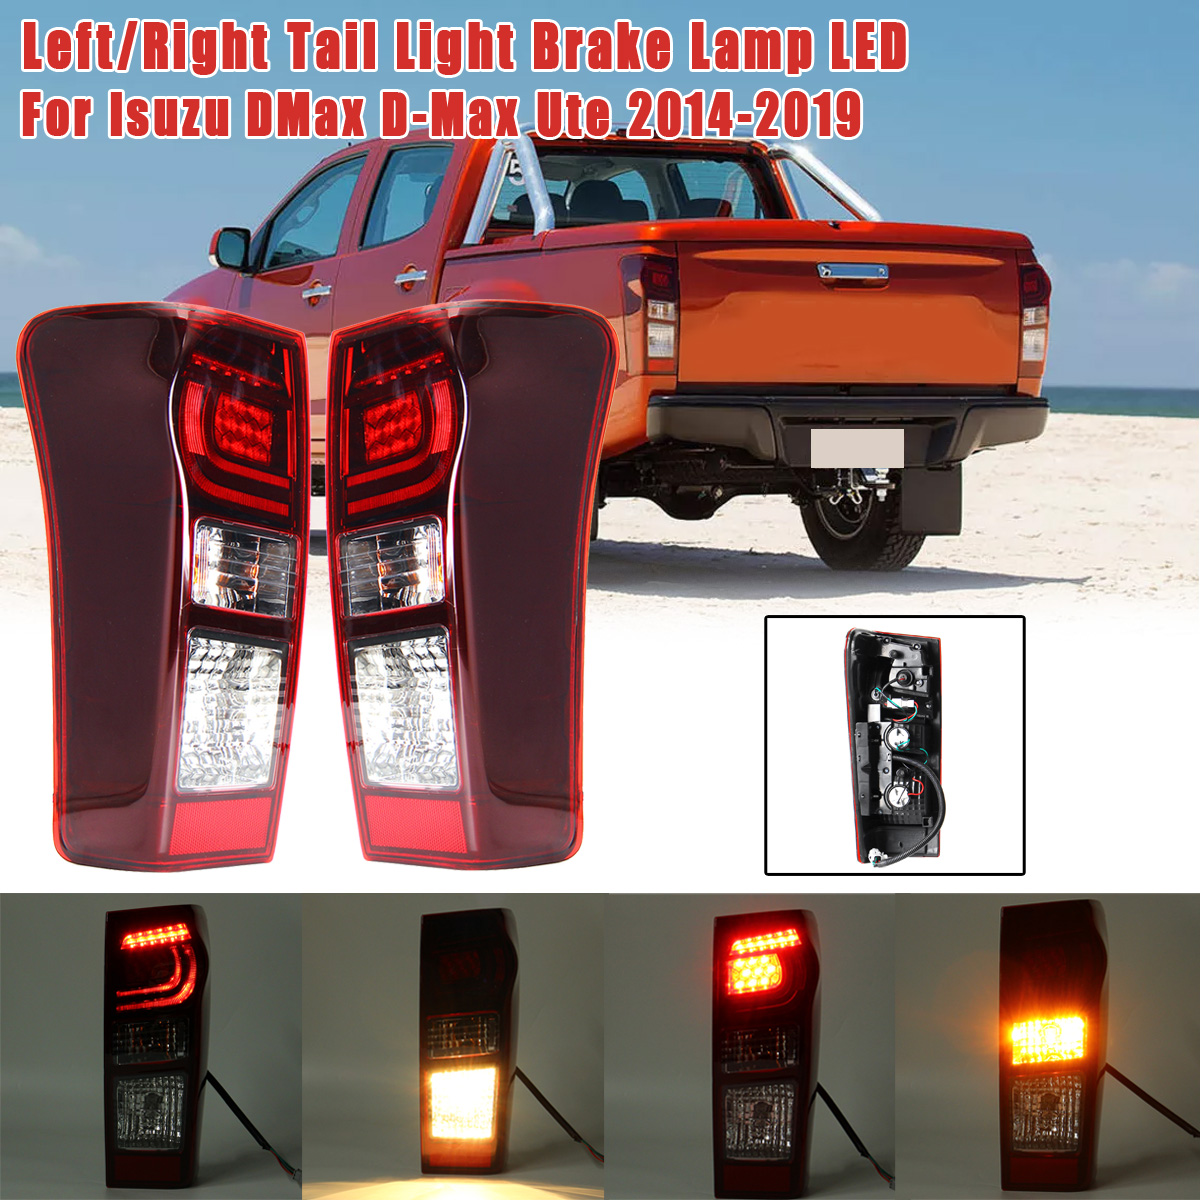 Car LED Rear Tail Light Brake Lamp with Blub For Isuzu DMax D-Max Ute 2014~2019 8961253983 898125393